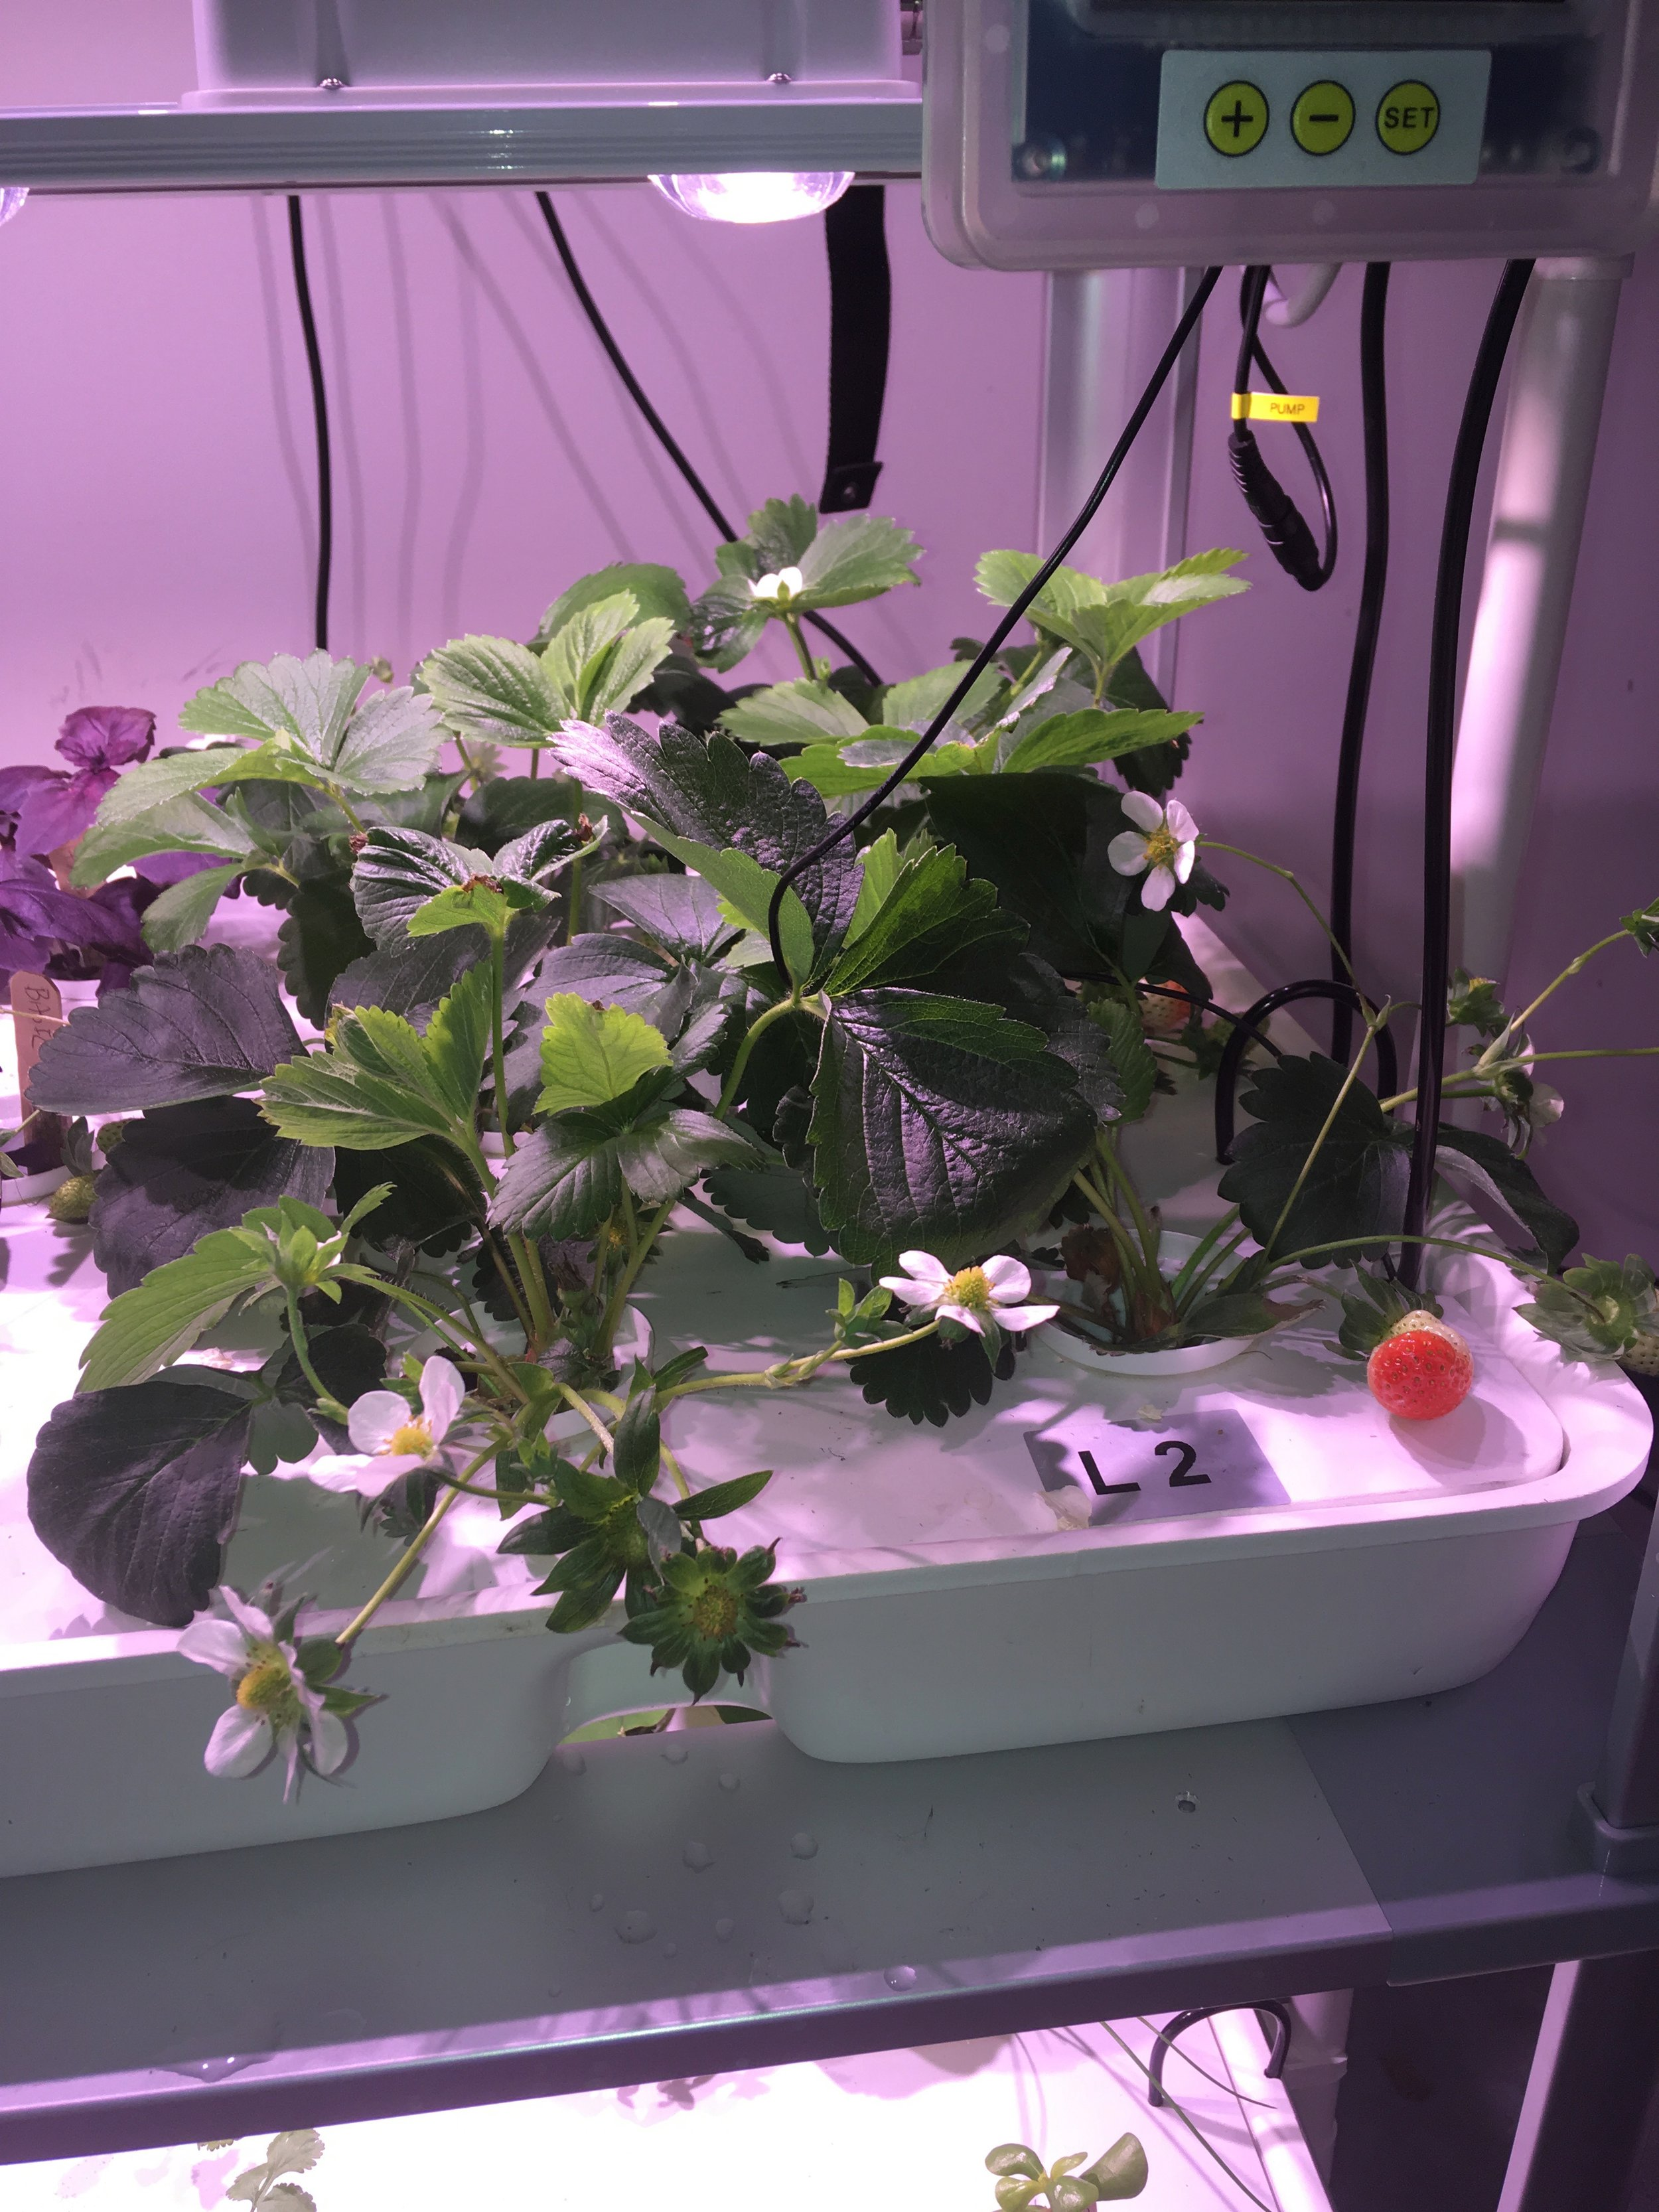 Strawberries are one of the more popular plants to grow on the LF-ONE. You can grow them from seed, from crowns, or from runners from established plants.